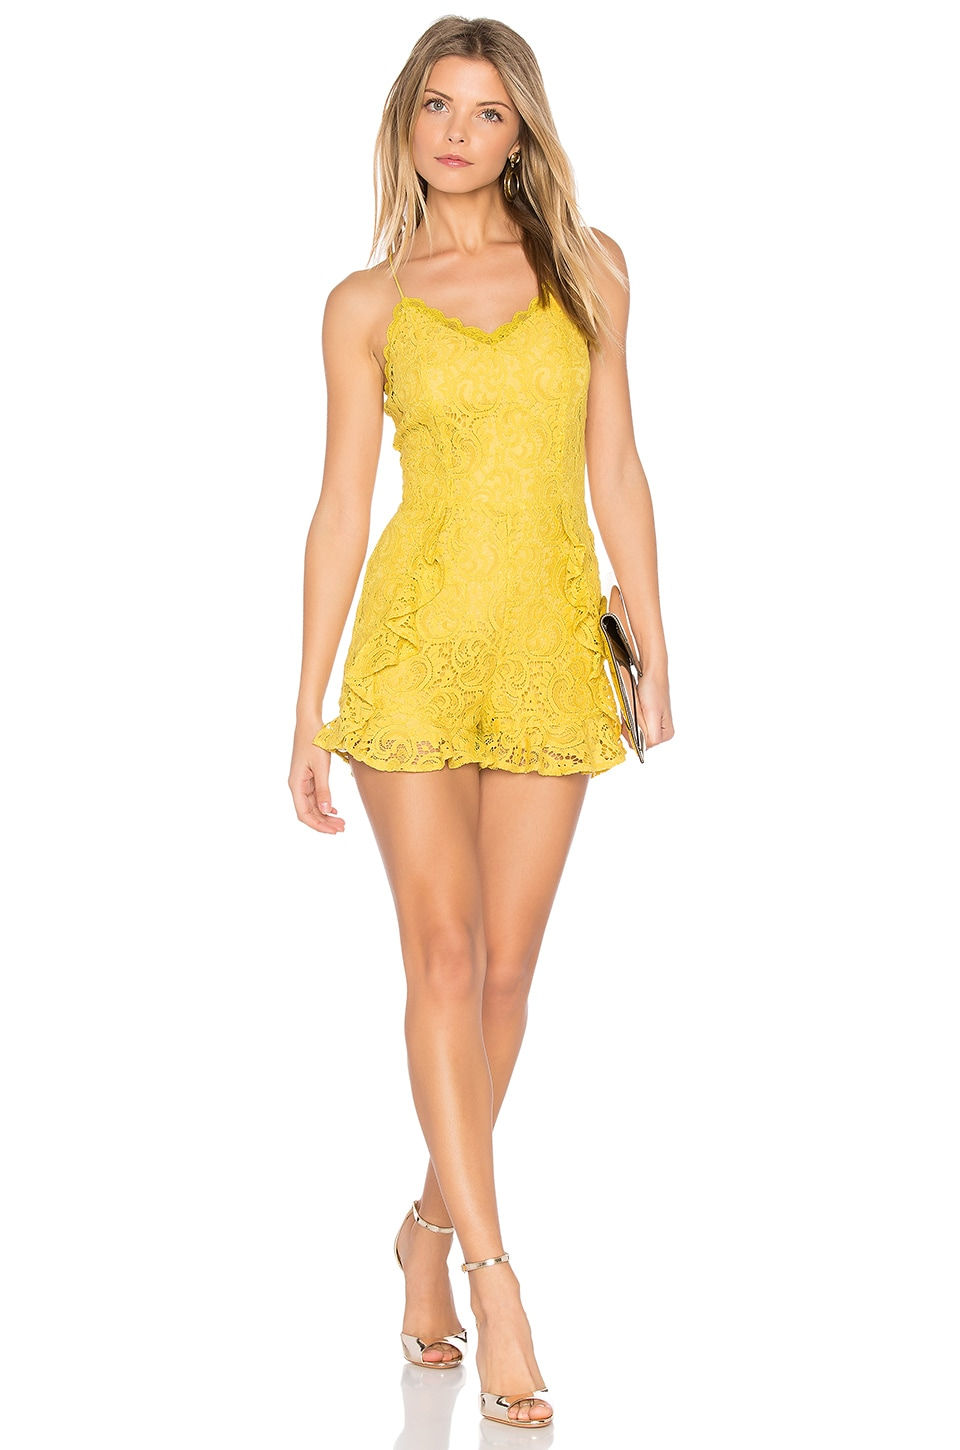 J.O.A. Frill Bottom Detail Lace Romper in Yellow